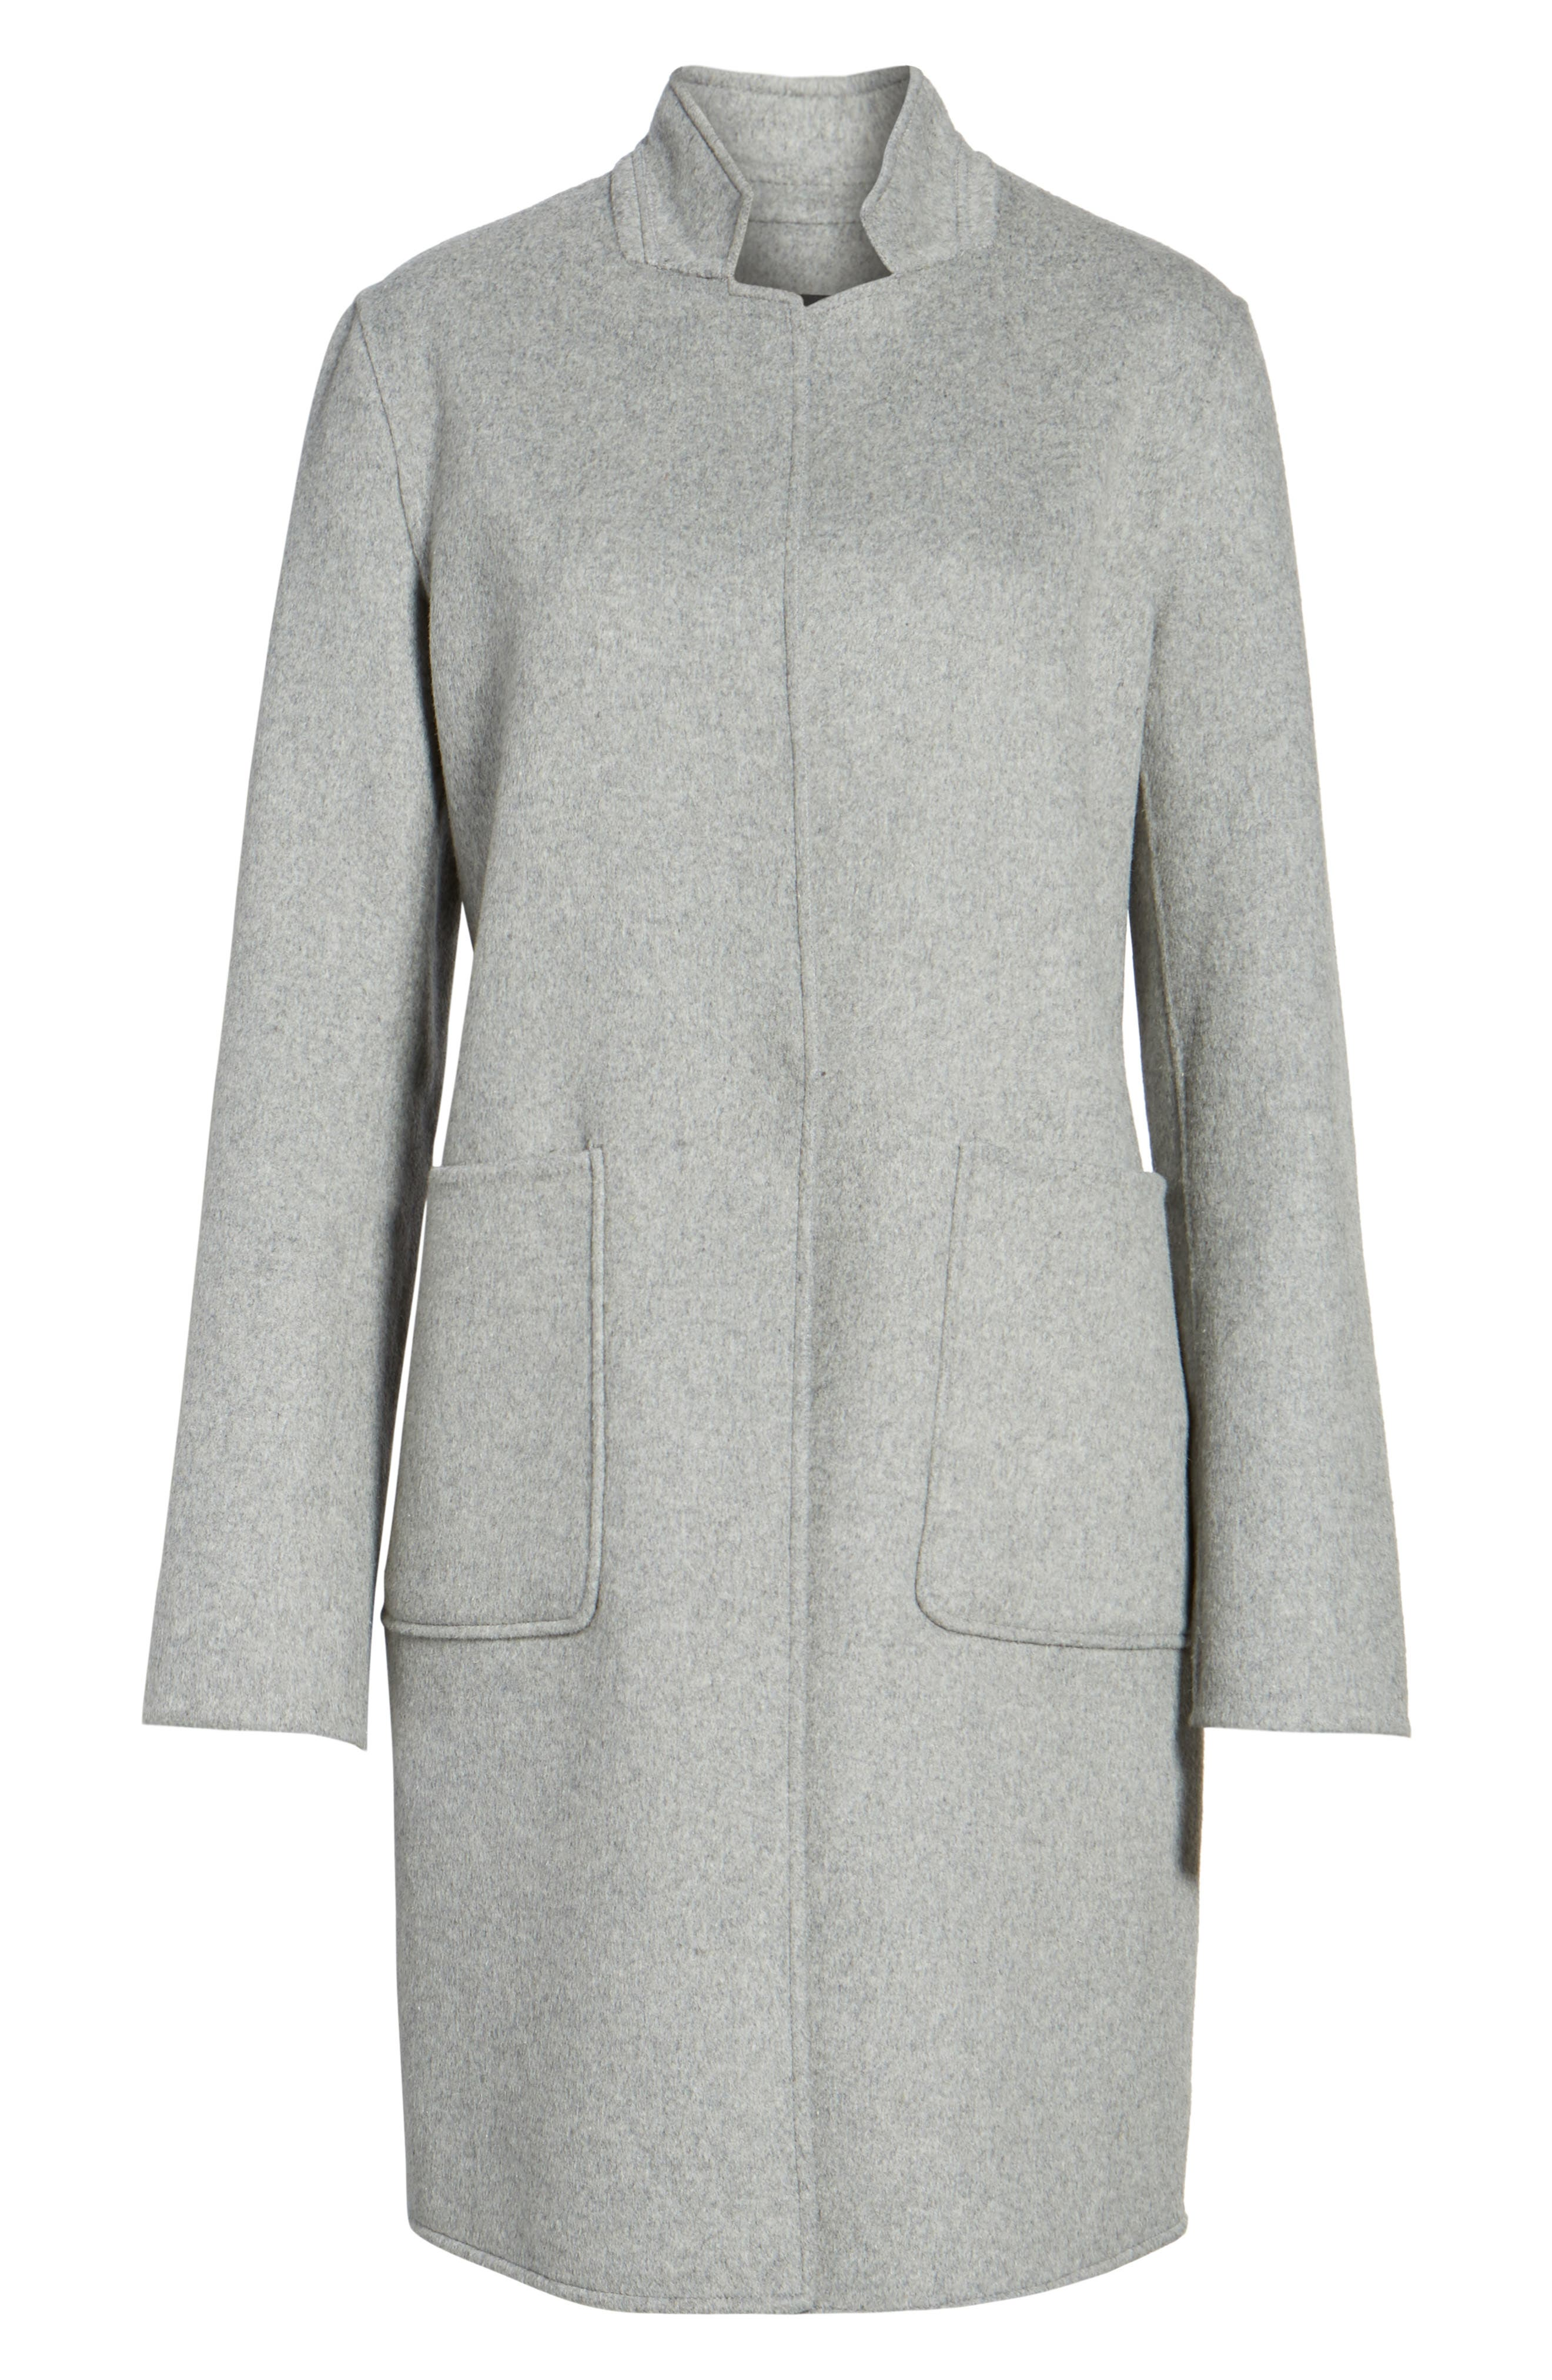 Double Face Wool Blend Coat,                             Alternate thumbnail 6, color,                             Light Grey